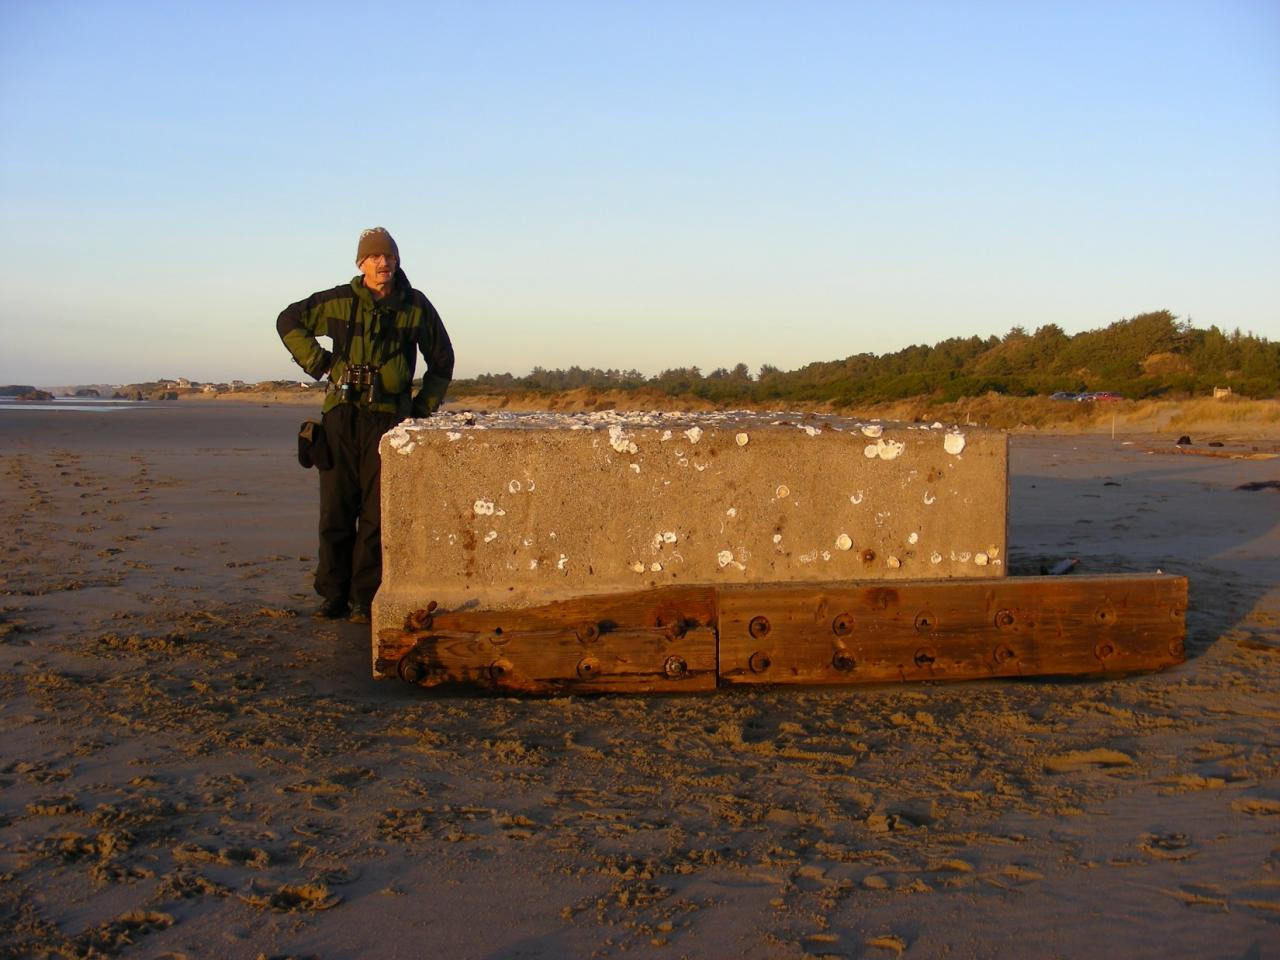 This picture was taken on 1/11/09 after Barbara Harrison reported this dock and another large cement tank on Mile 96.